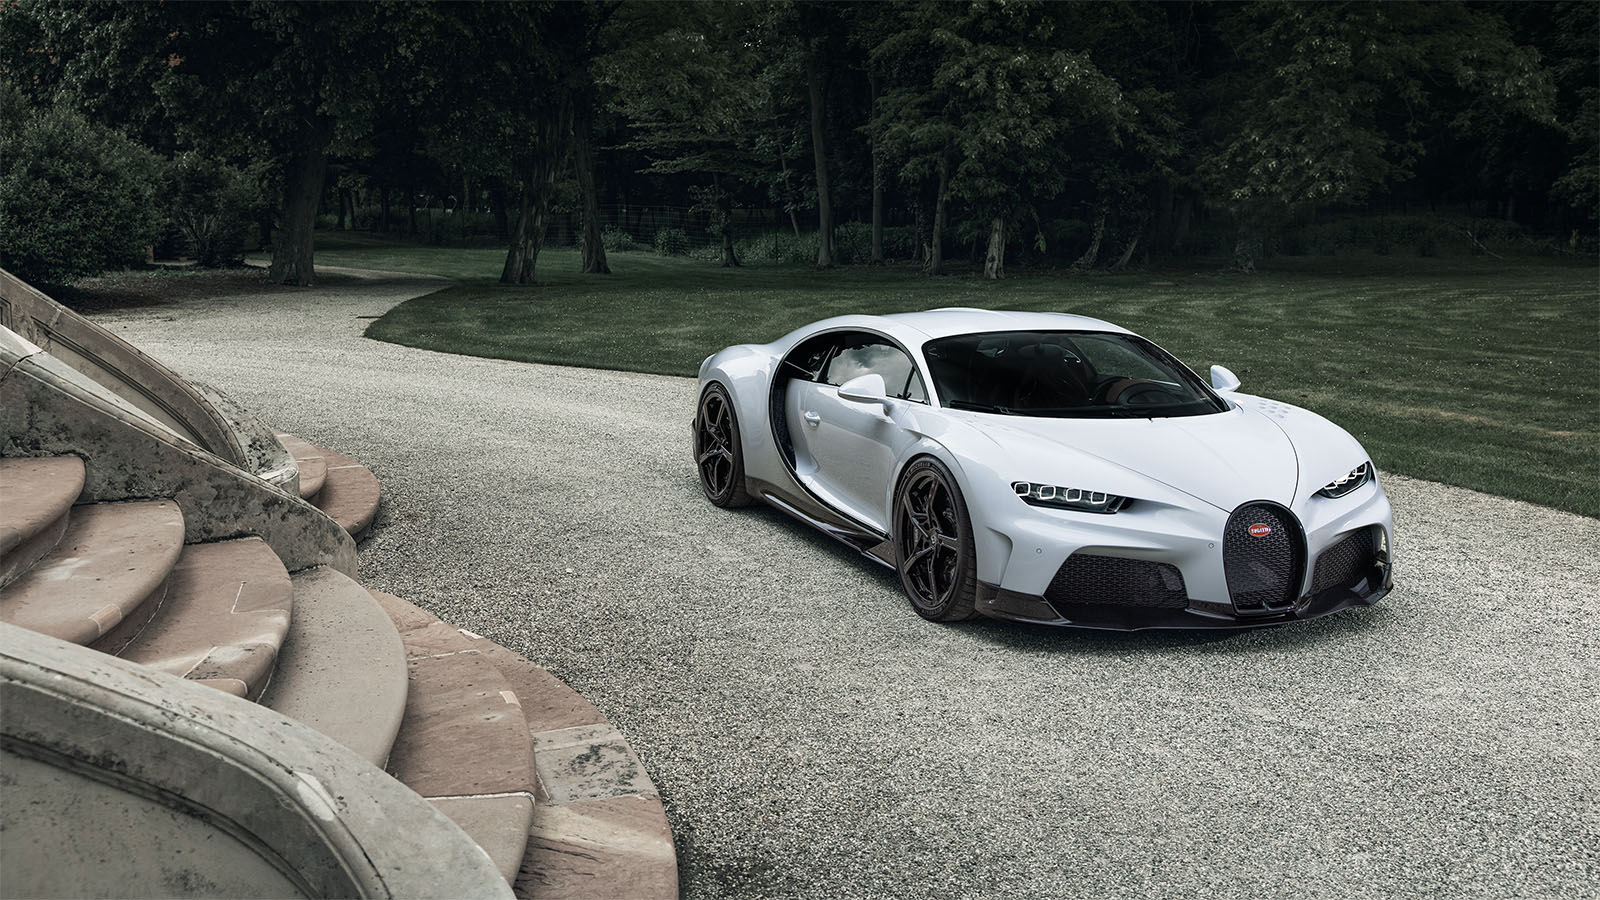 A view of a Bugatti Chiron parked at a driveway of a large staircase.